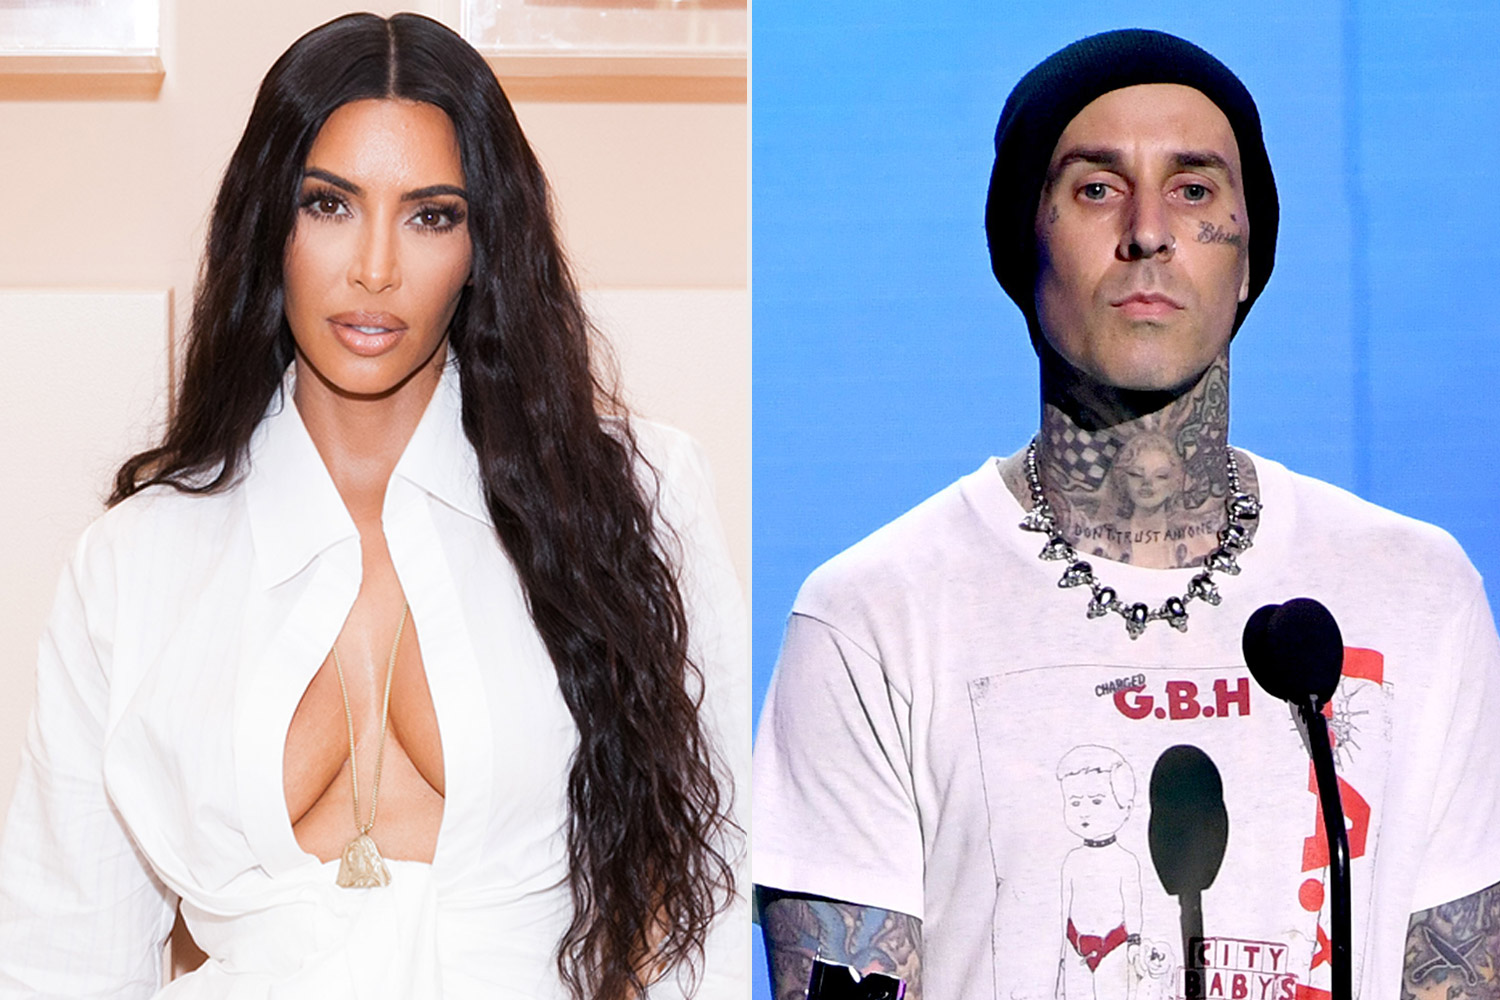 Is Kim Kardashian Dating With Travis Barker? Truth About Their Relationship